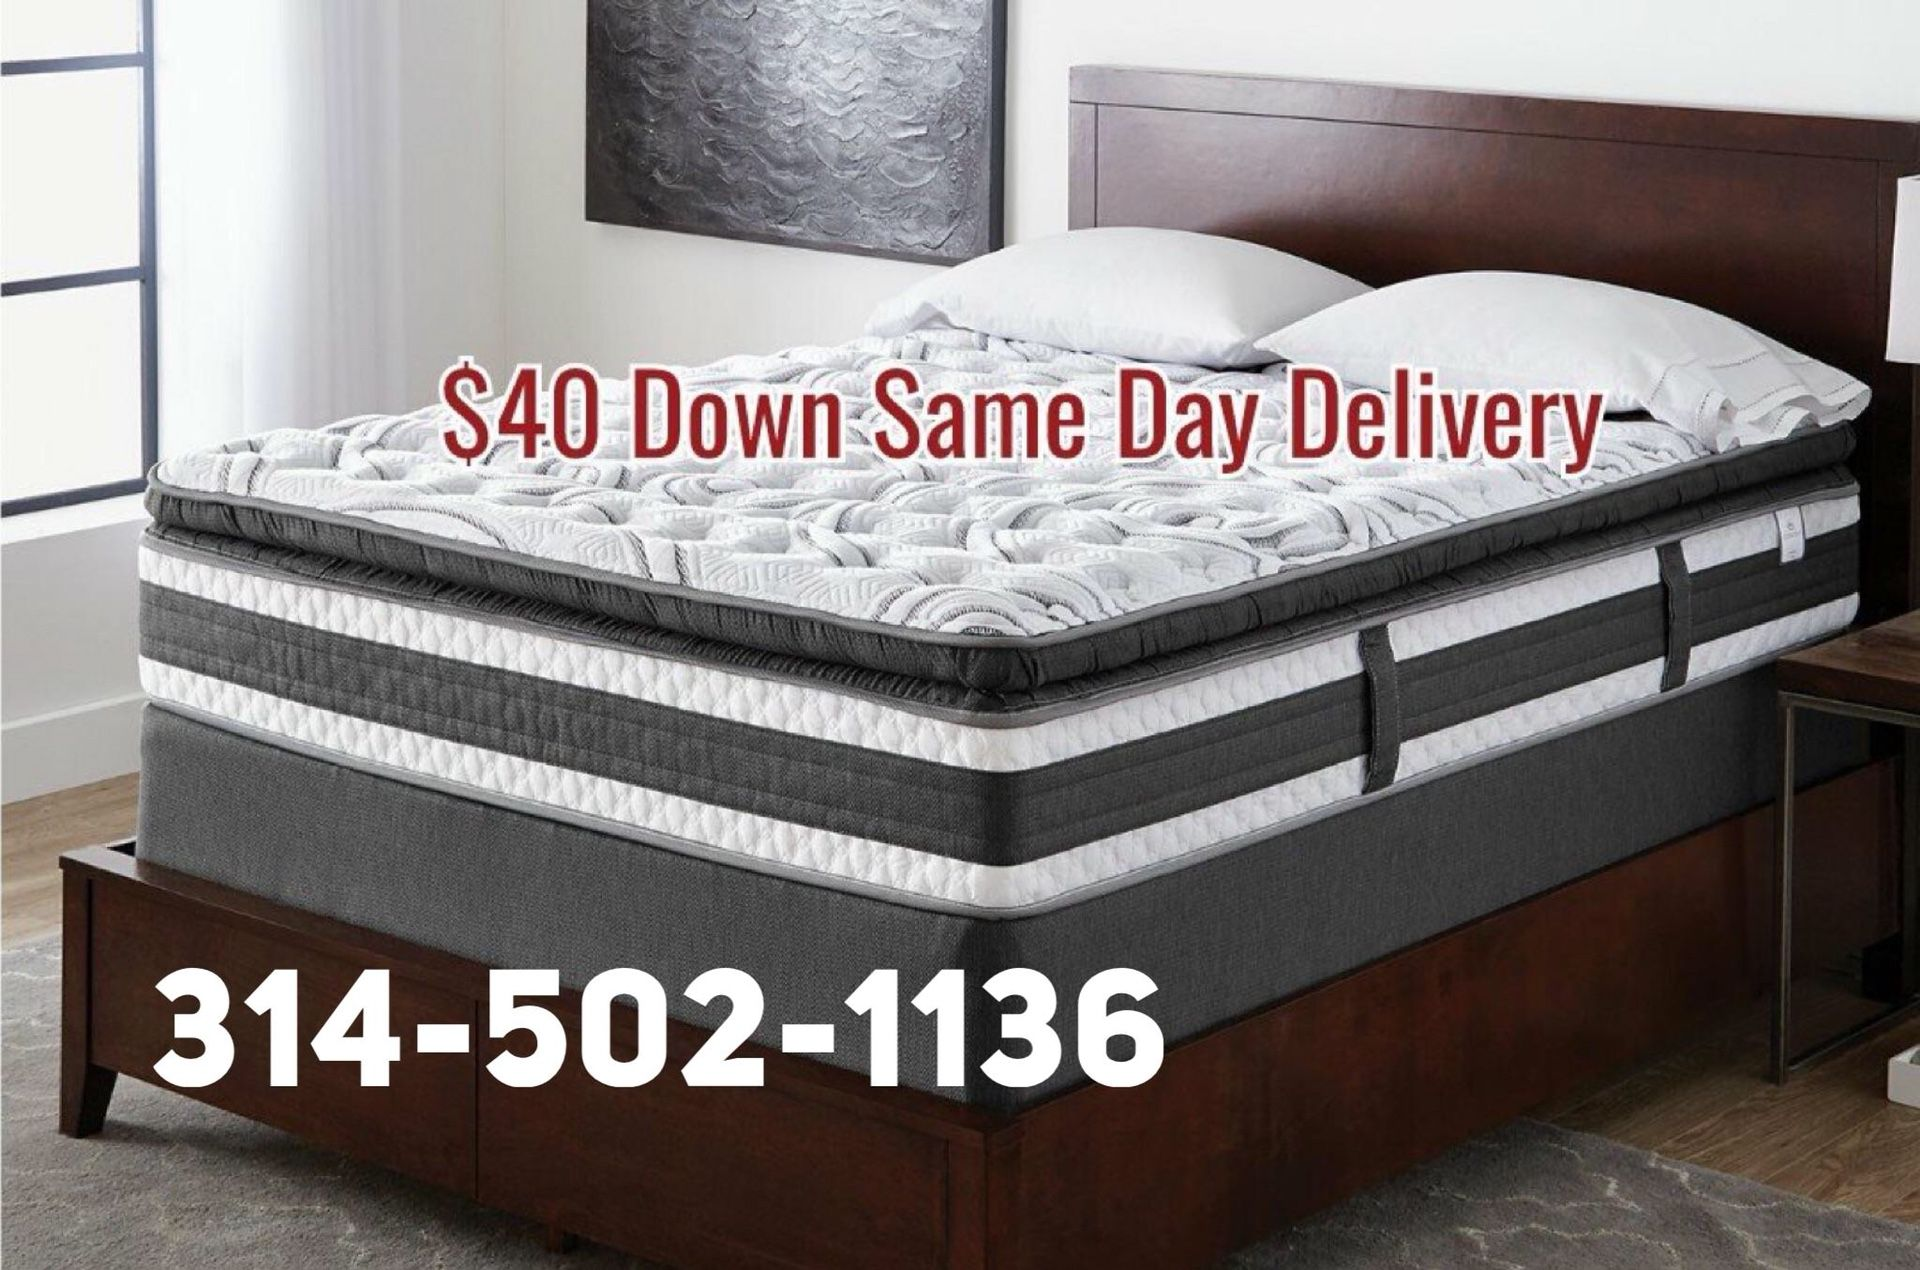 Mattress and Furniture outlet.